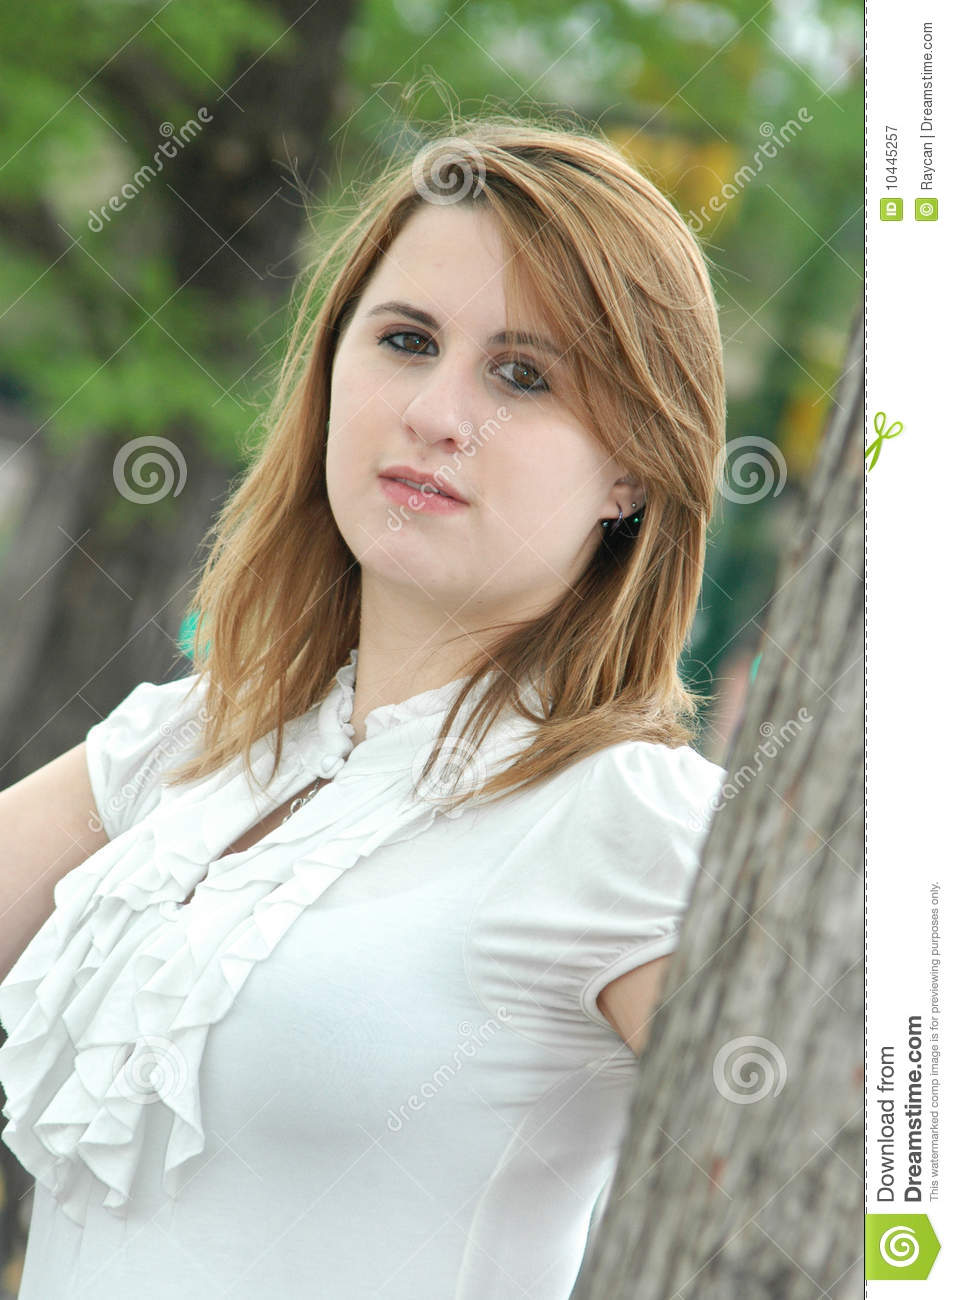 Pictures of beatiful teens